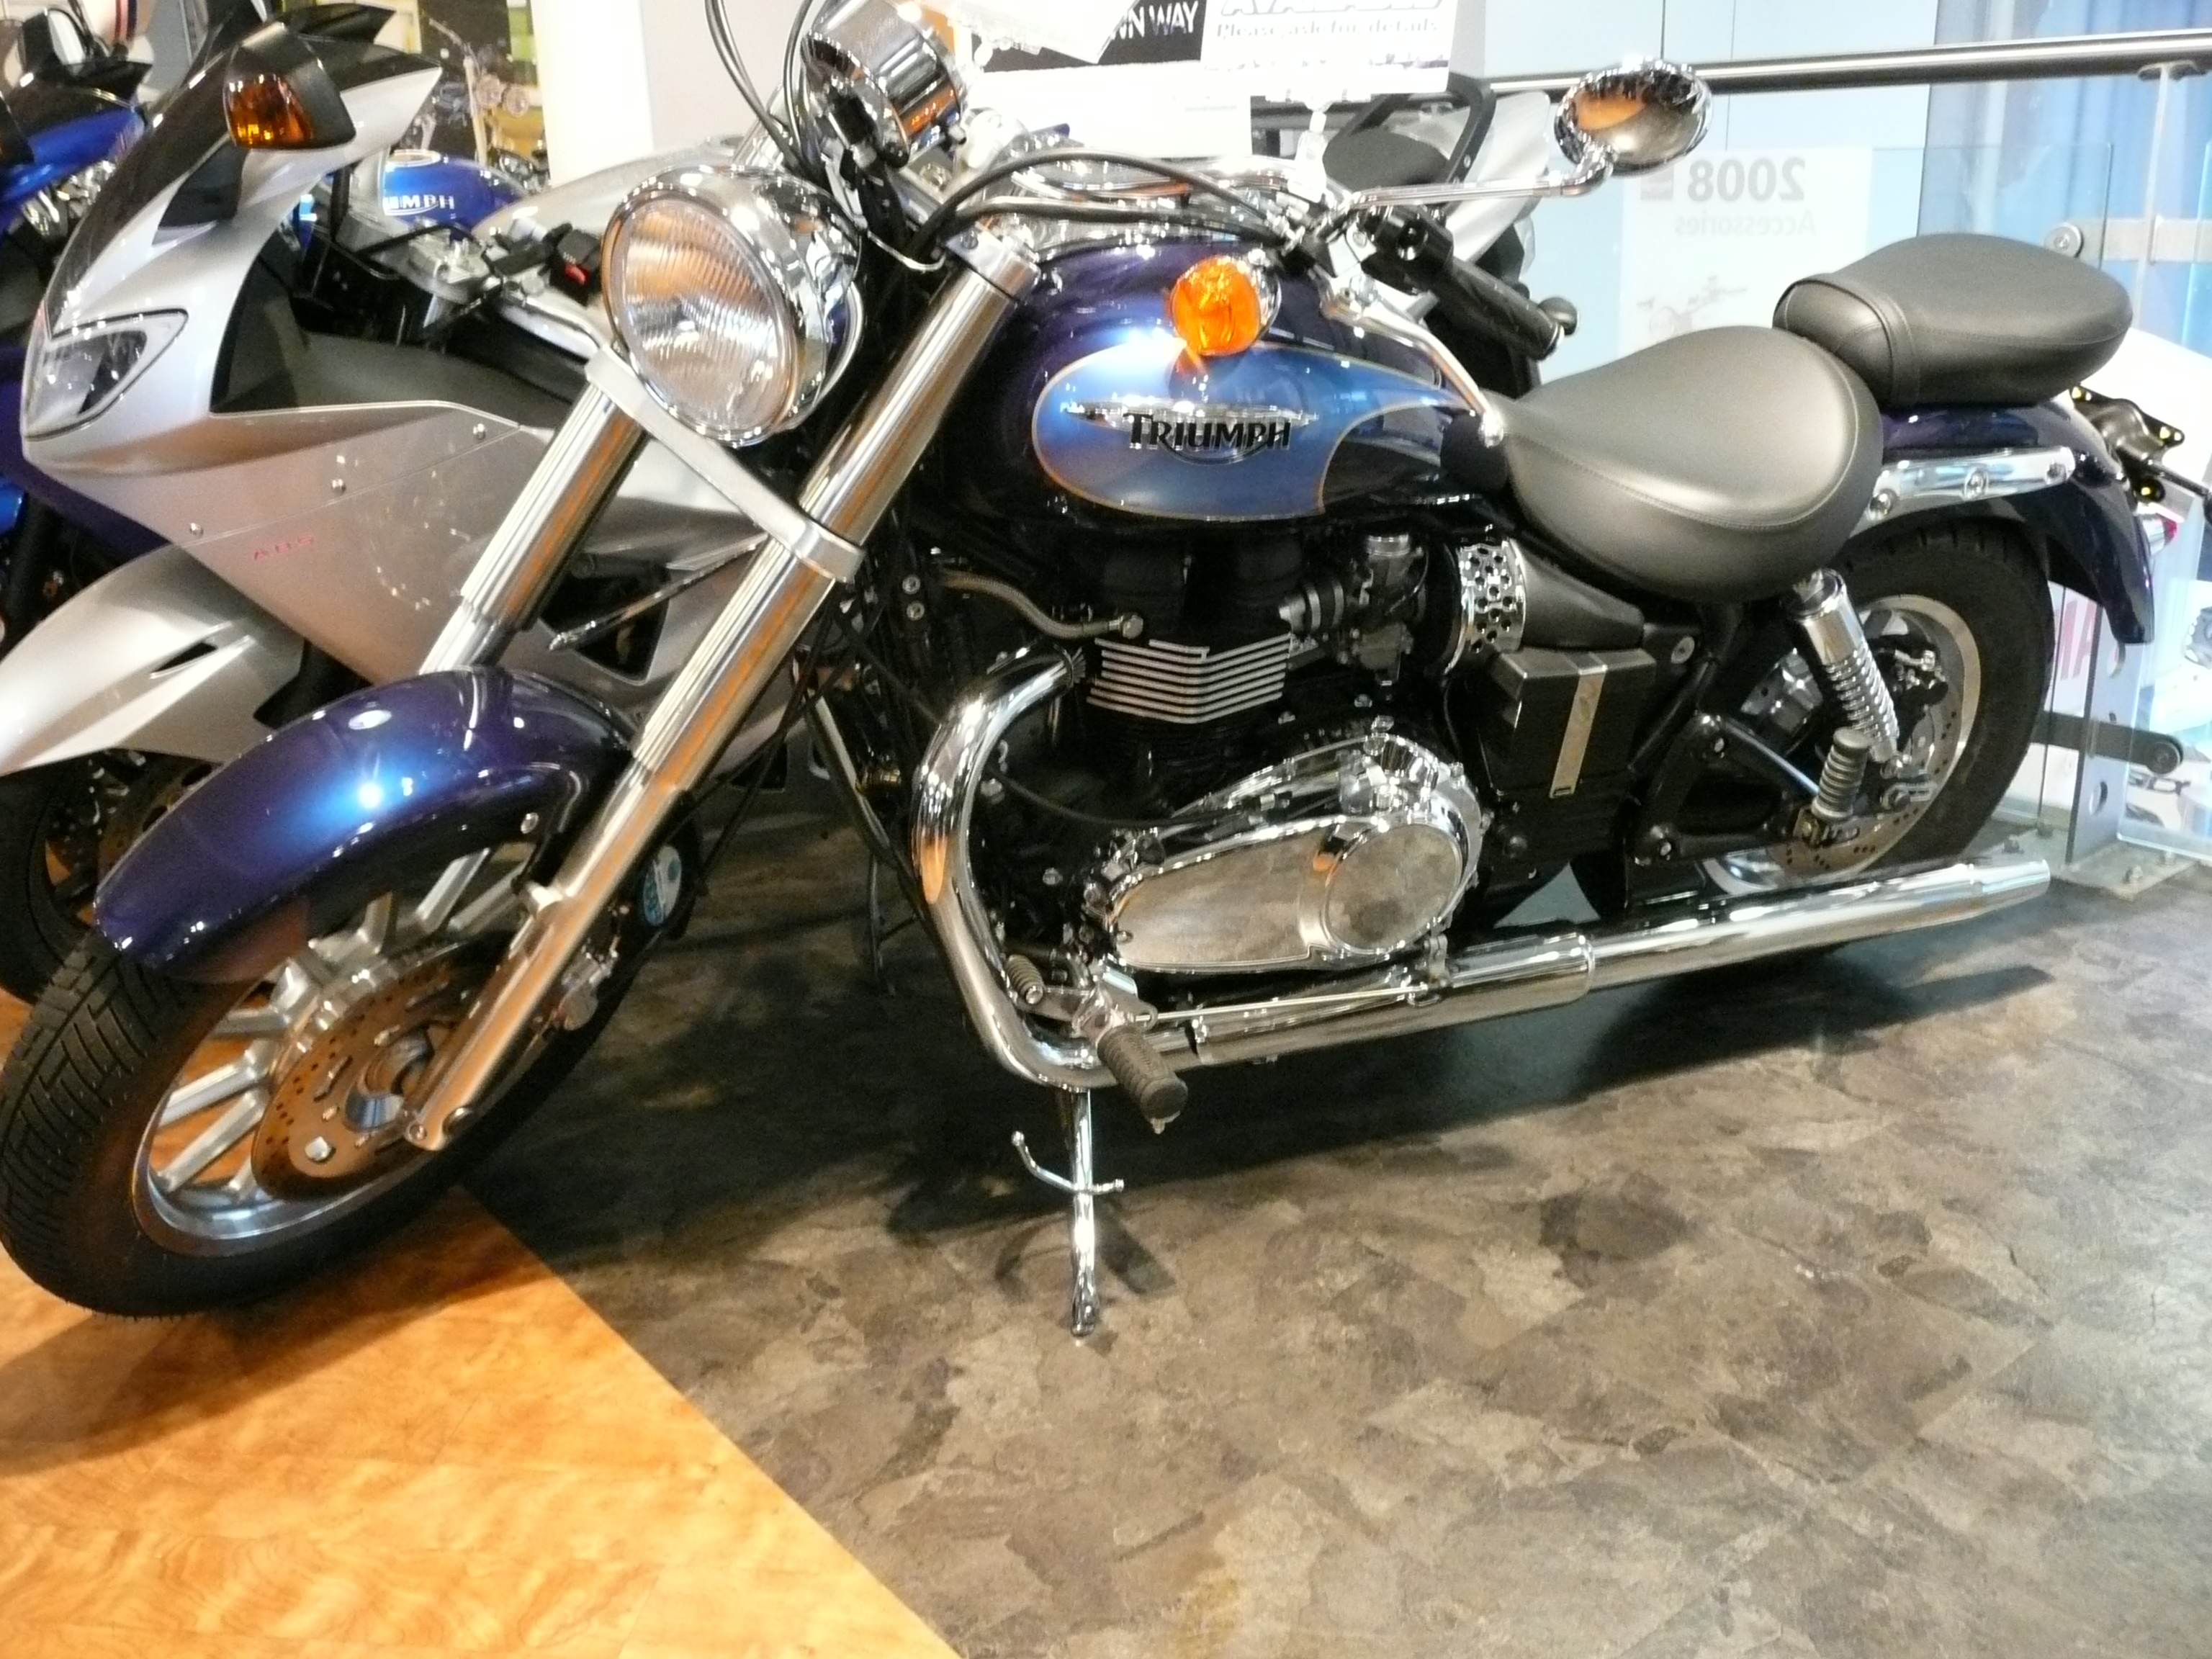 Marvelous Triumph Bonneville America Wikipedia Caraccident5 Cool Chair Designs And Ideas Caraccident5Info